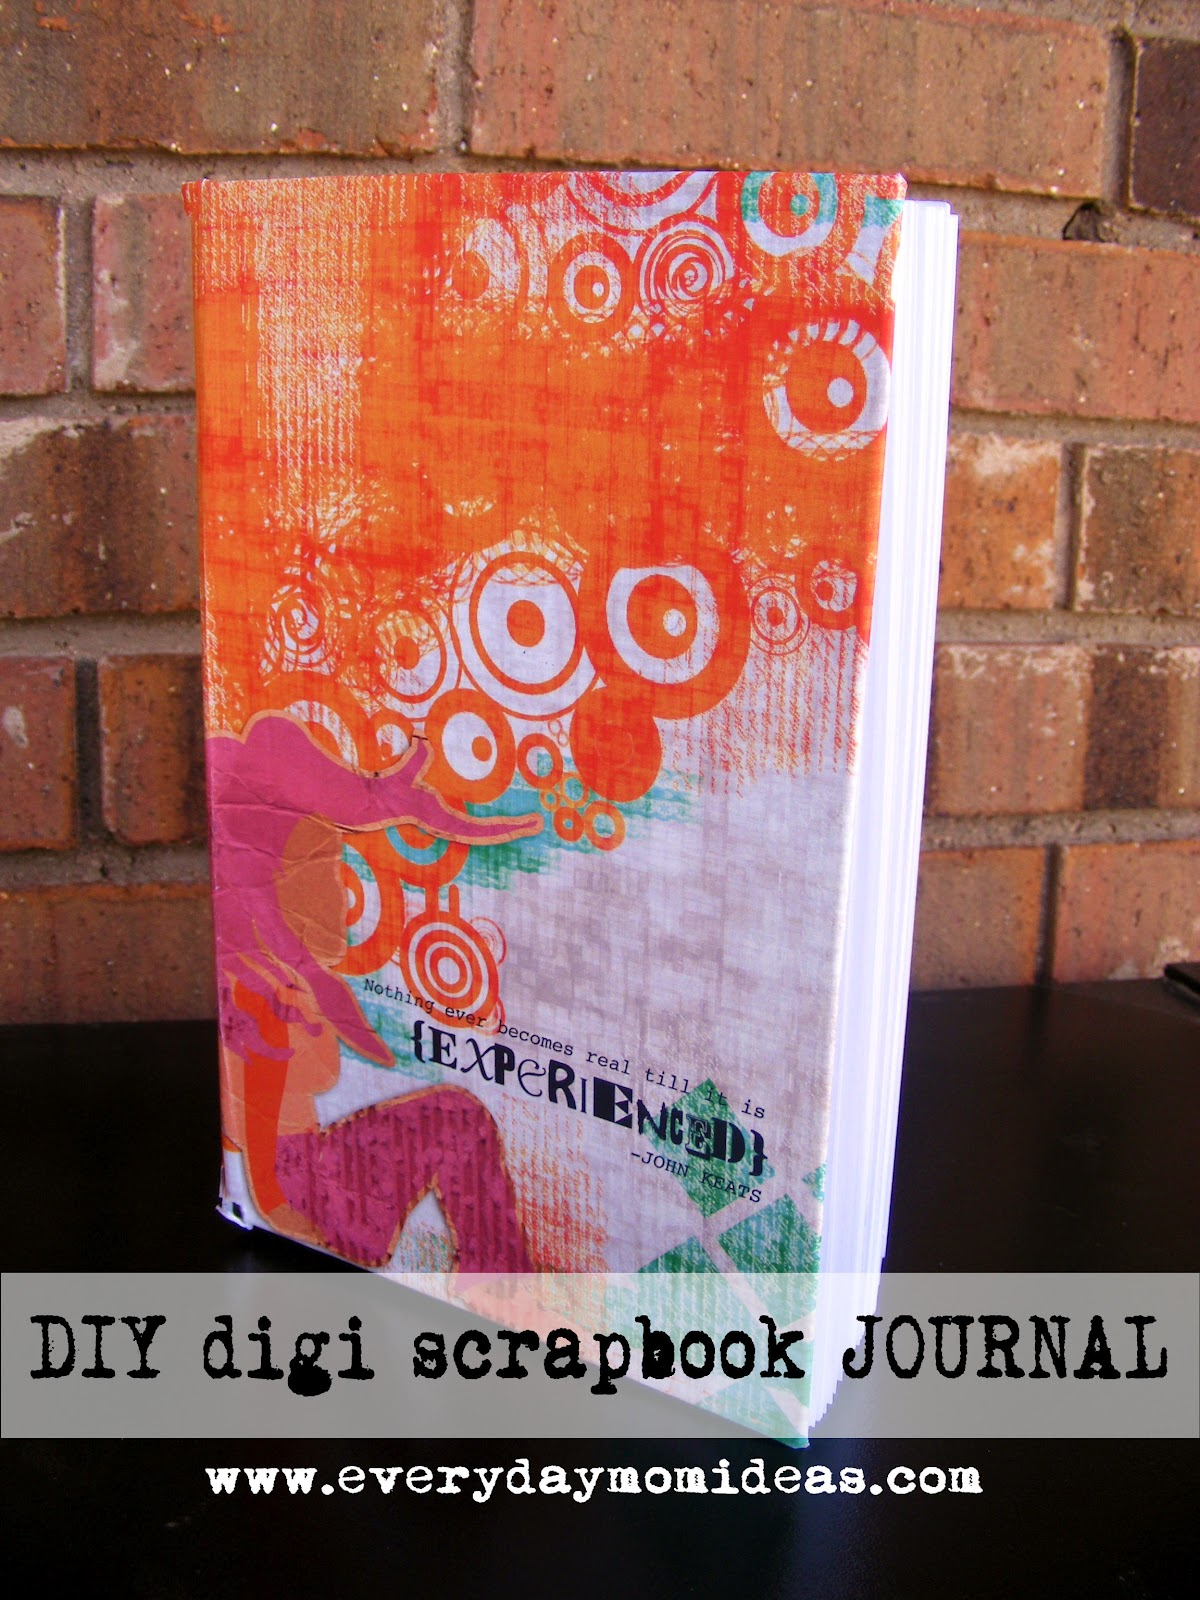 How to make scrapbook journal - The Making Of A Handmade Journal Digi Scrapbook Style Everyday Mom